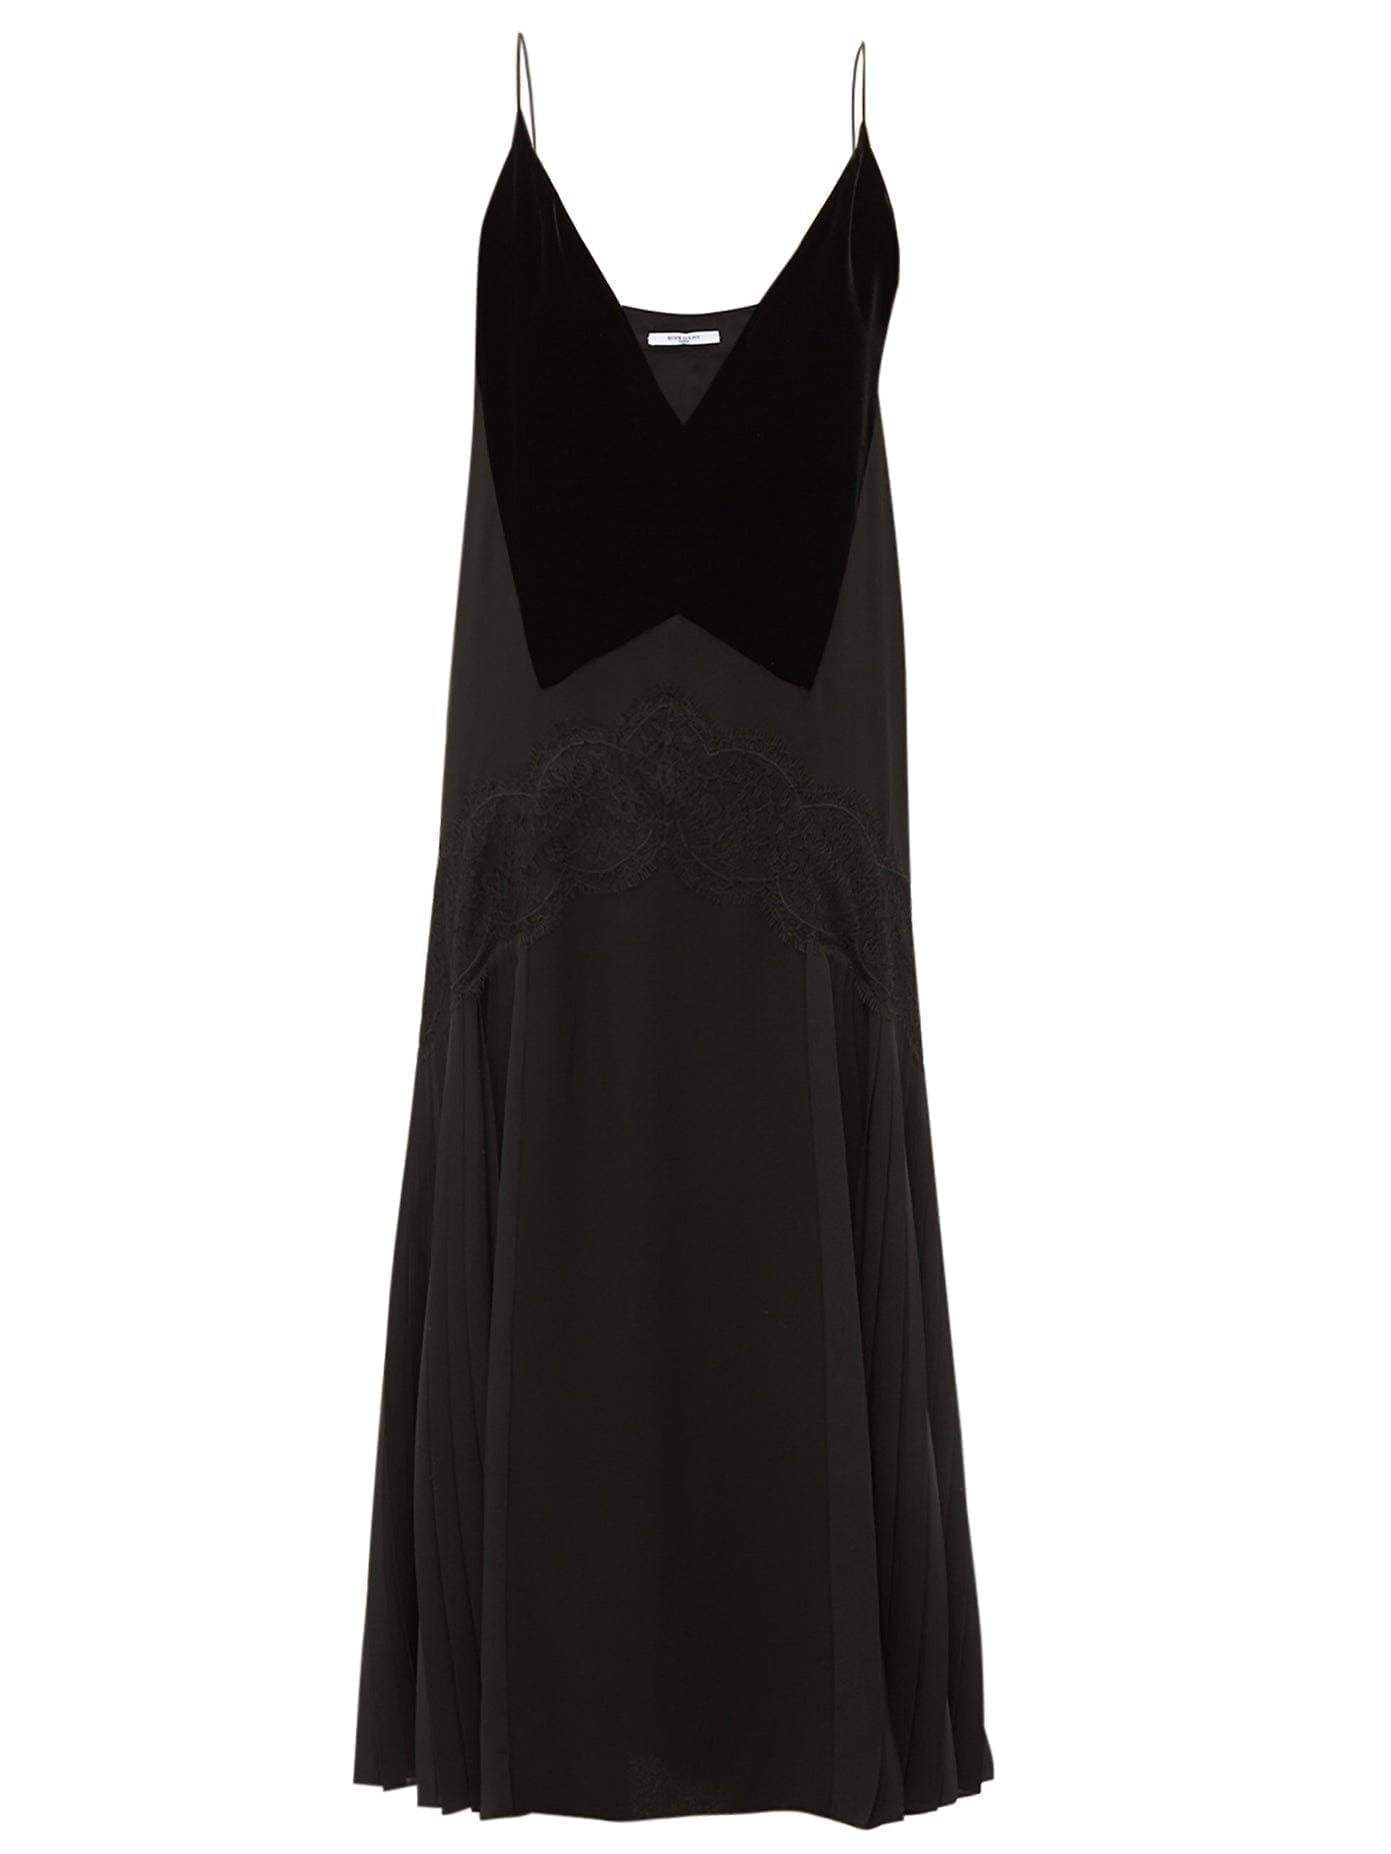 GIVENCHY Lace-trim Pleated Midi Dress